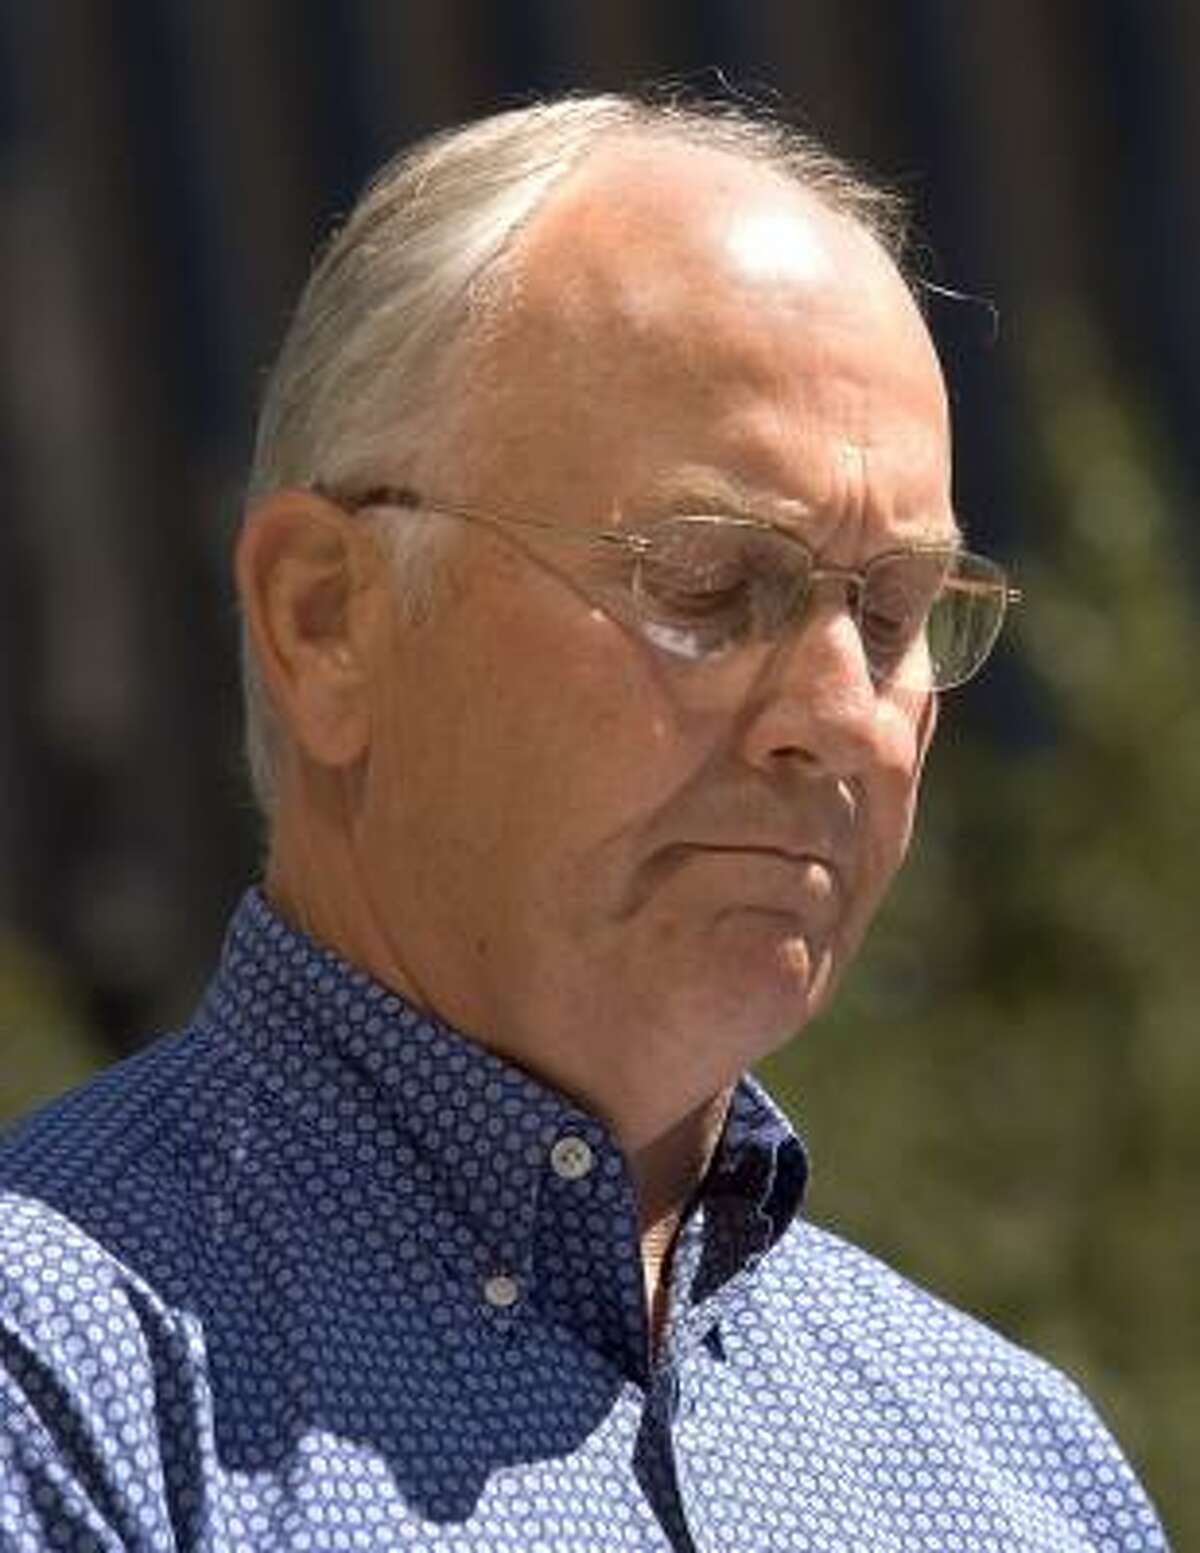 Idaho's Republican Senator Larry Craig, shown today at a news conference, pleaded guilty after his arrest during a sex sting in a Minneapolis airport men's room.